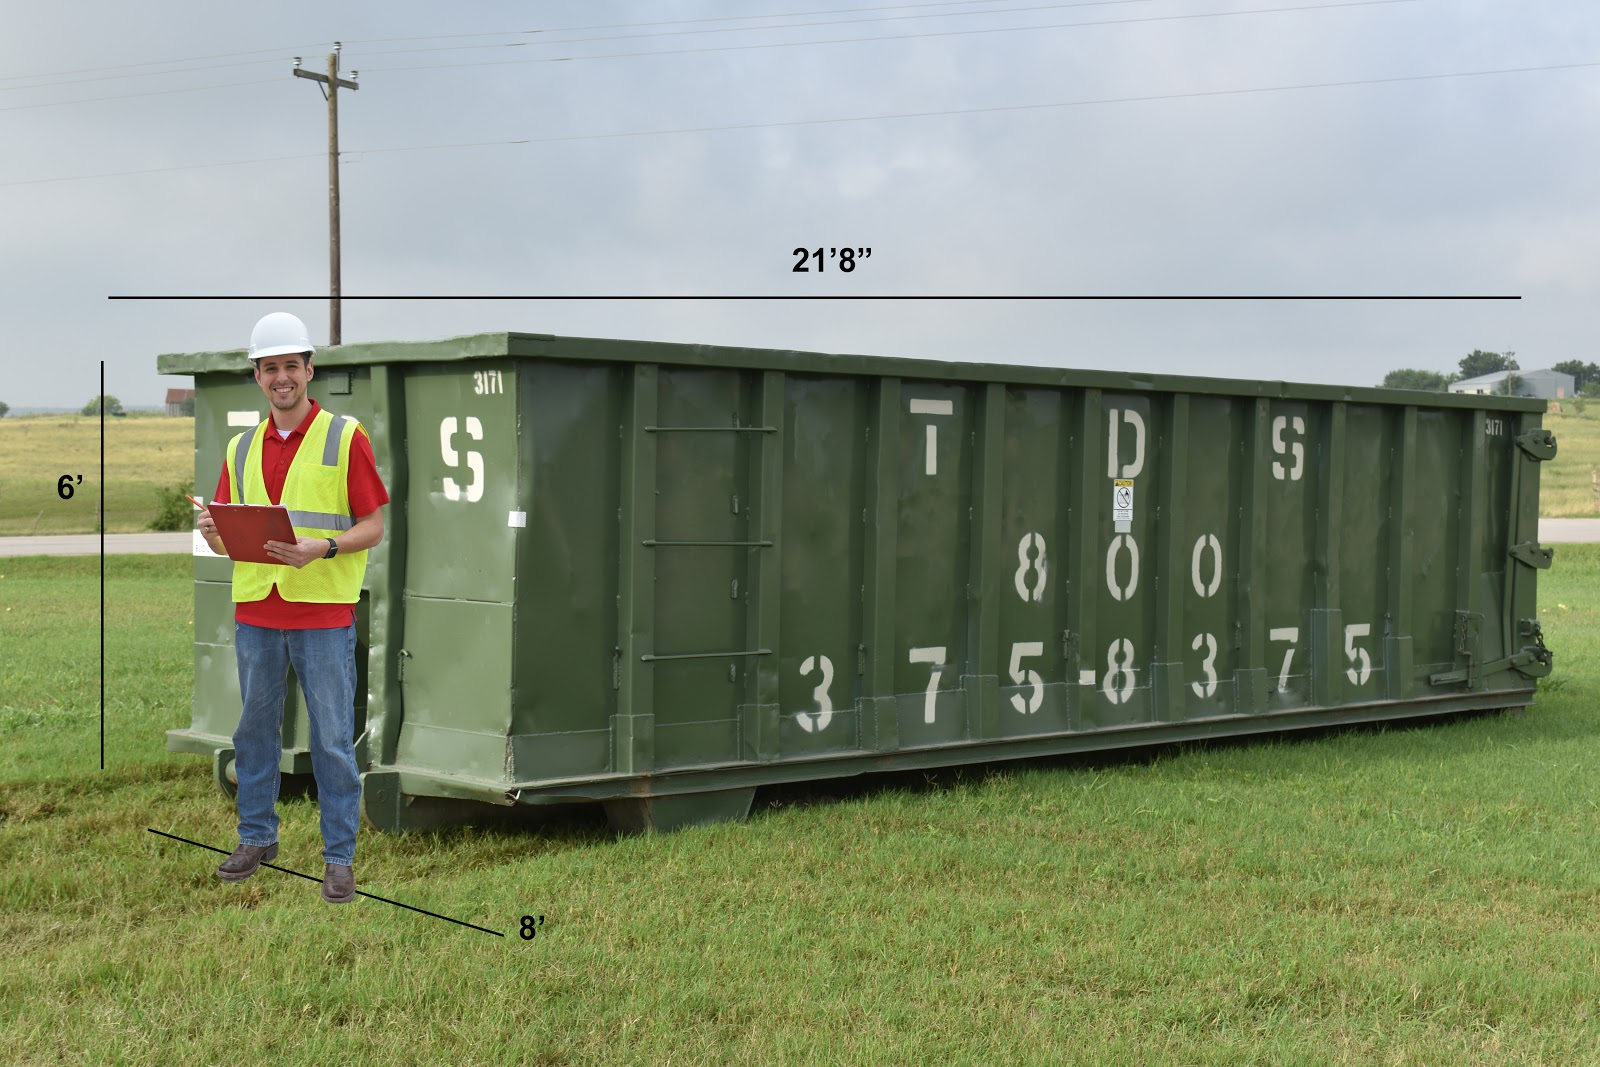 30-yard dumpster rental dimensions